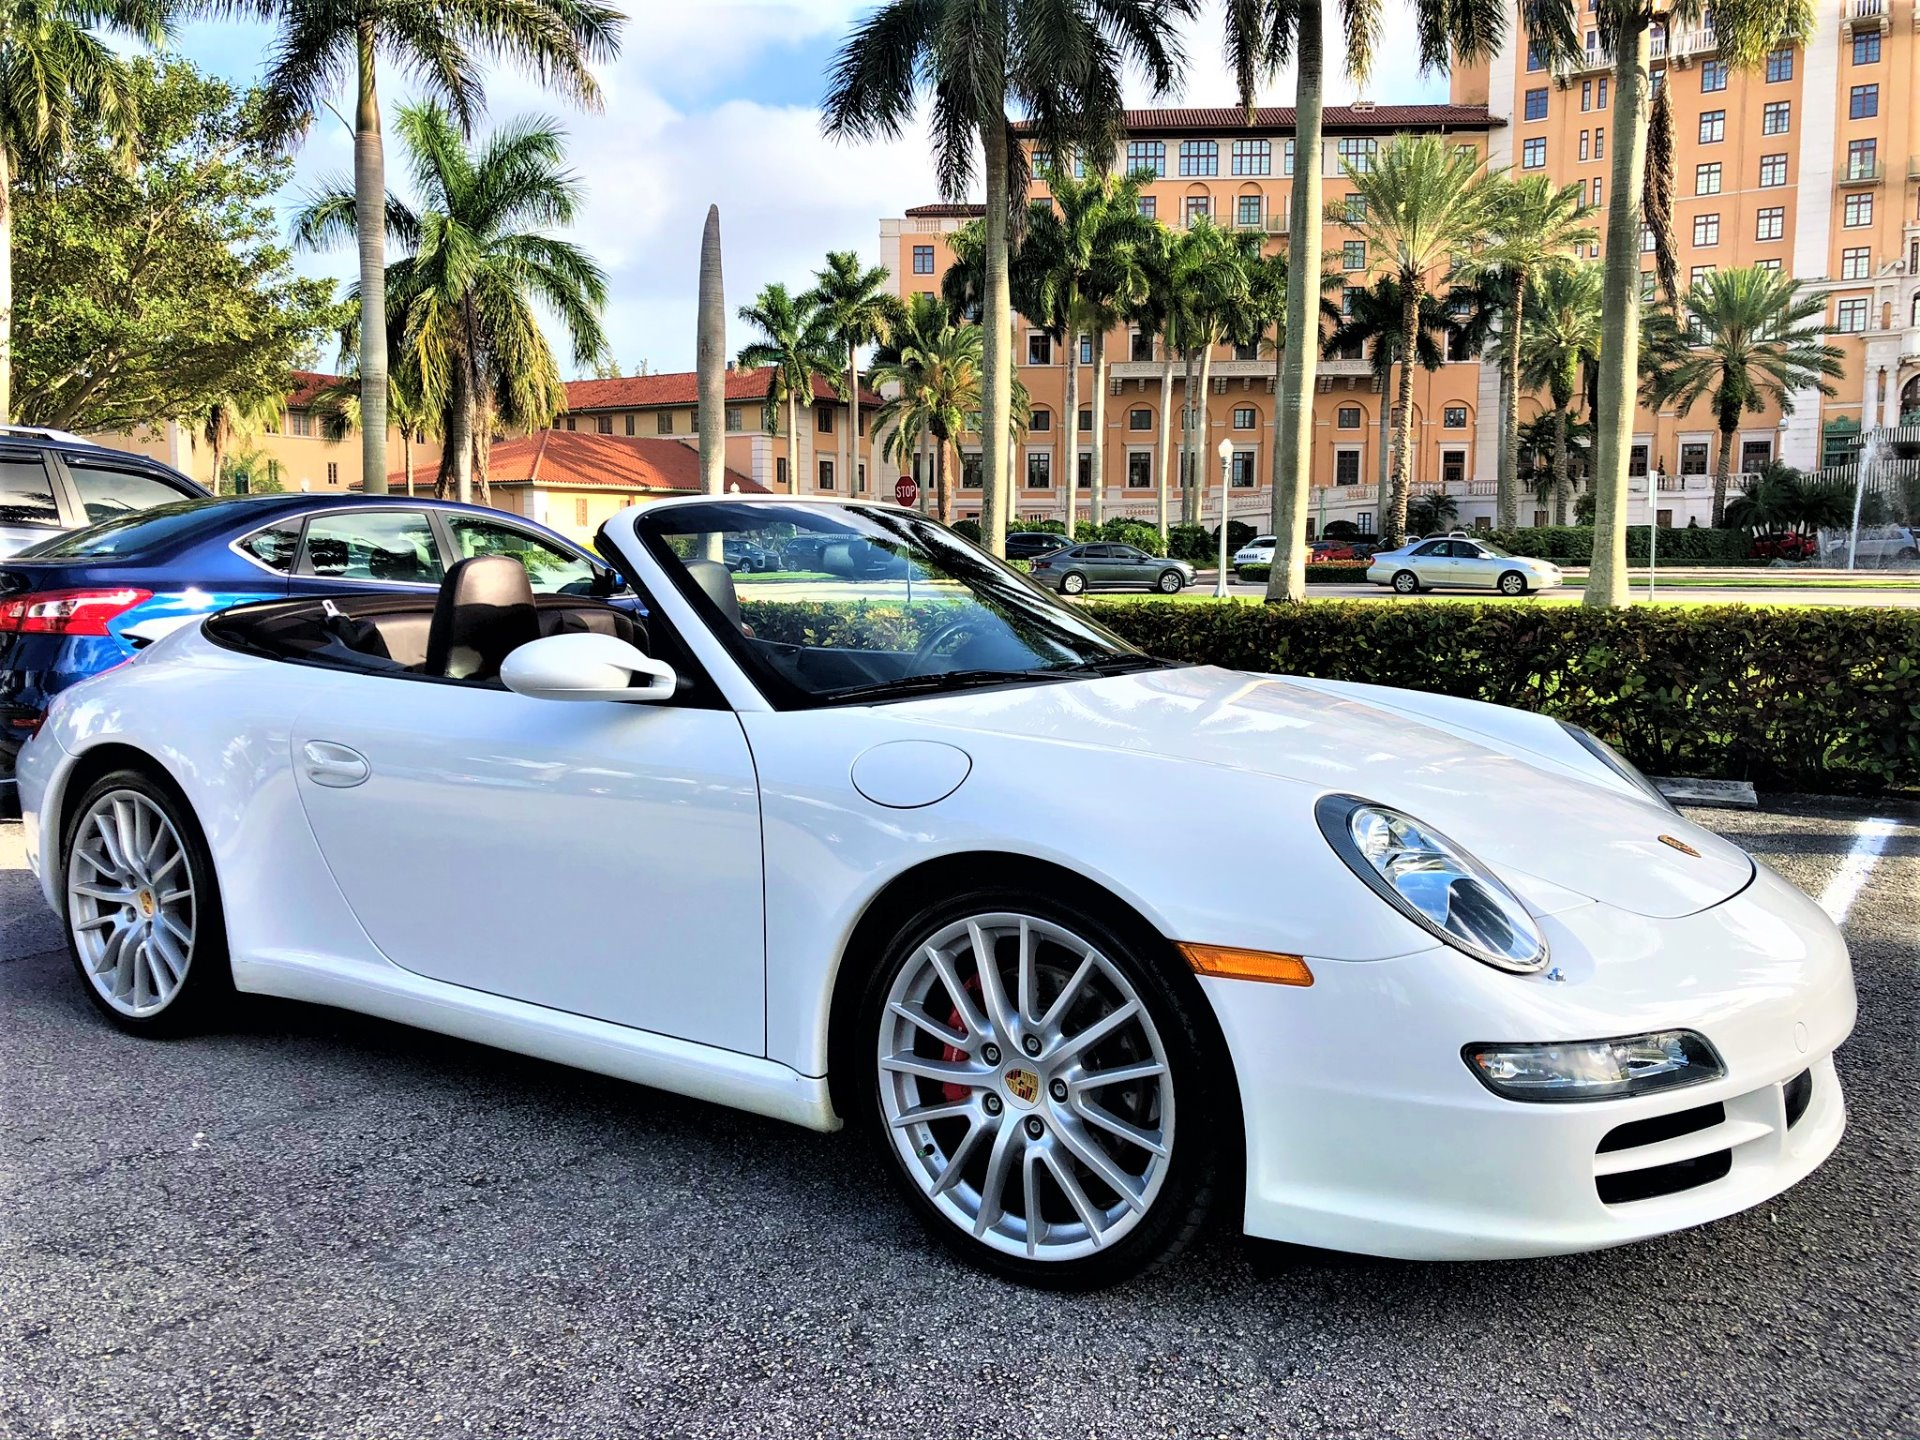 Used 2005 Porsche 911 Carrera S for sale $39,850 at The Gables Sports Cars in Miami FL 33146 4